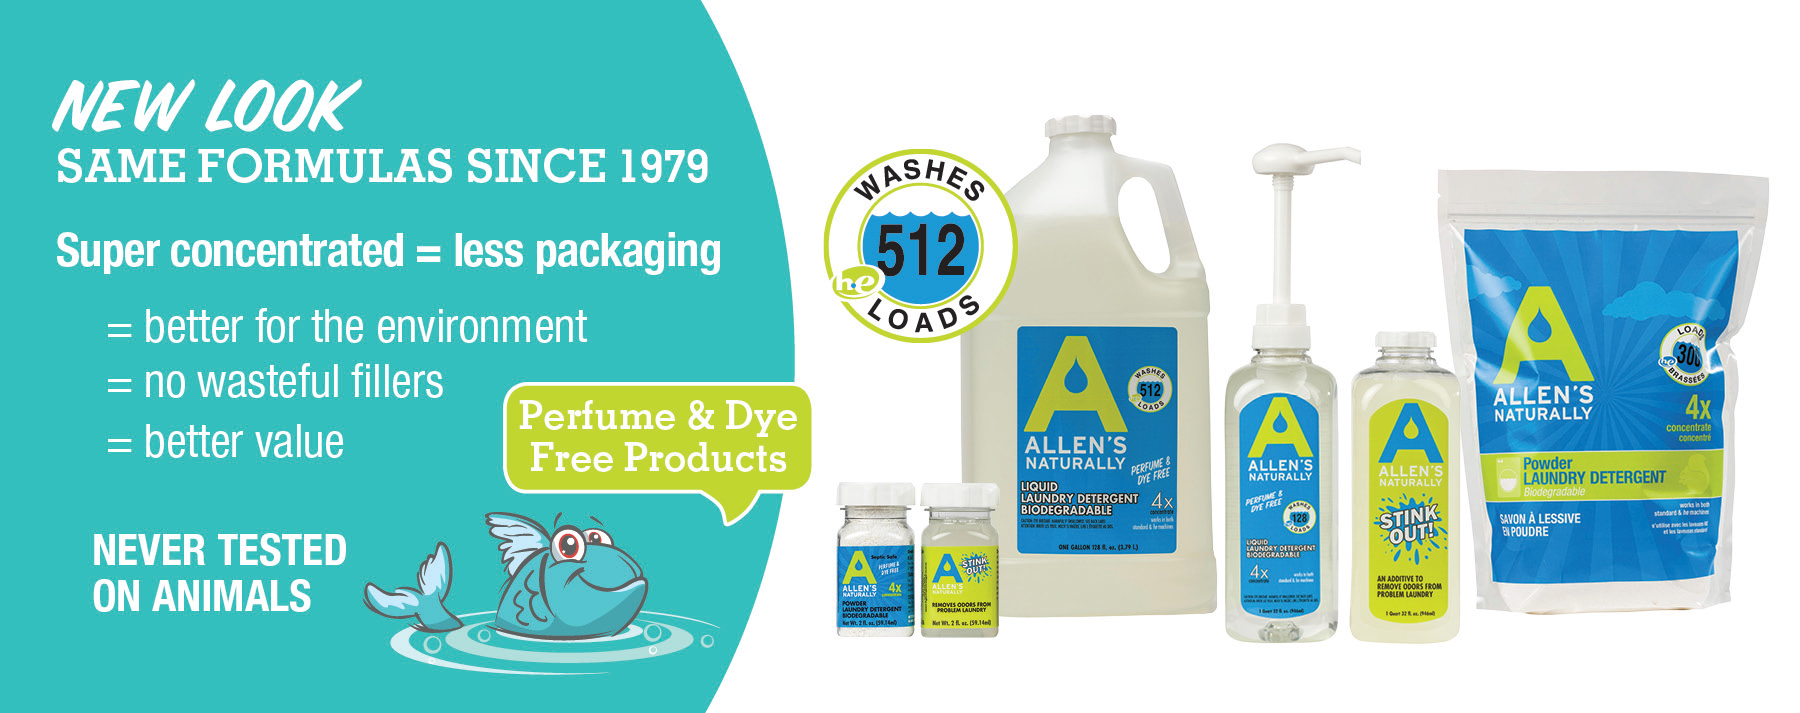 Making Perfume & Dye Free Laundry Detergent and cleaning products since 1979